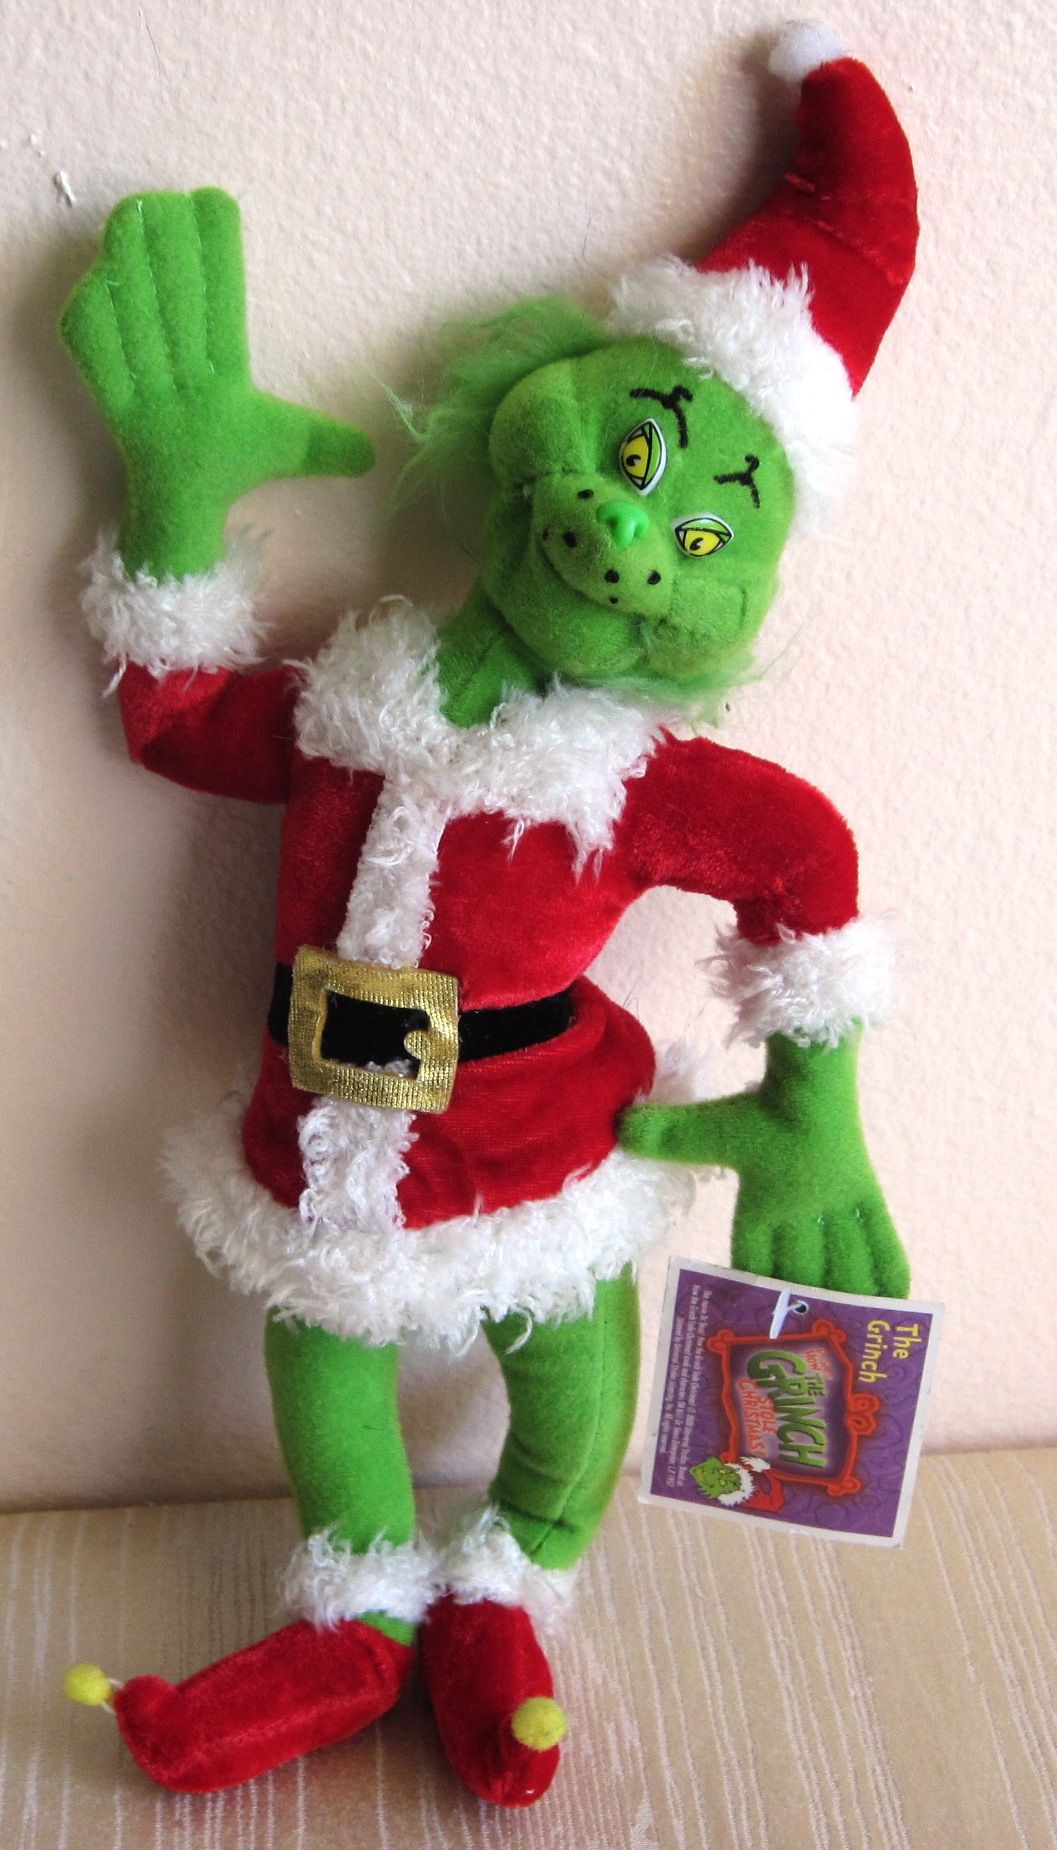 The Grinch Christmas Plush Year 2000 Collectible On Sale Christmas Plush Christmas Toys Vintage Plush